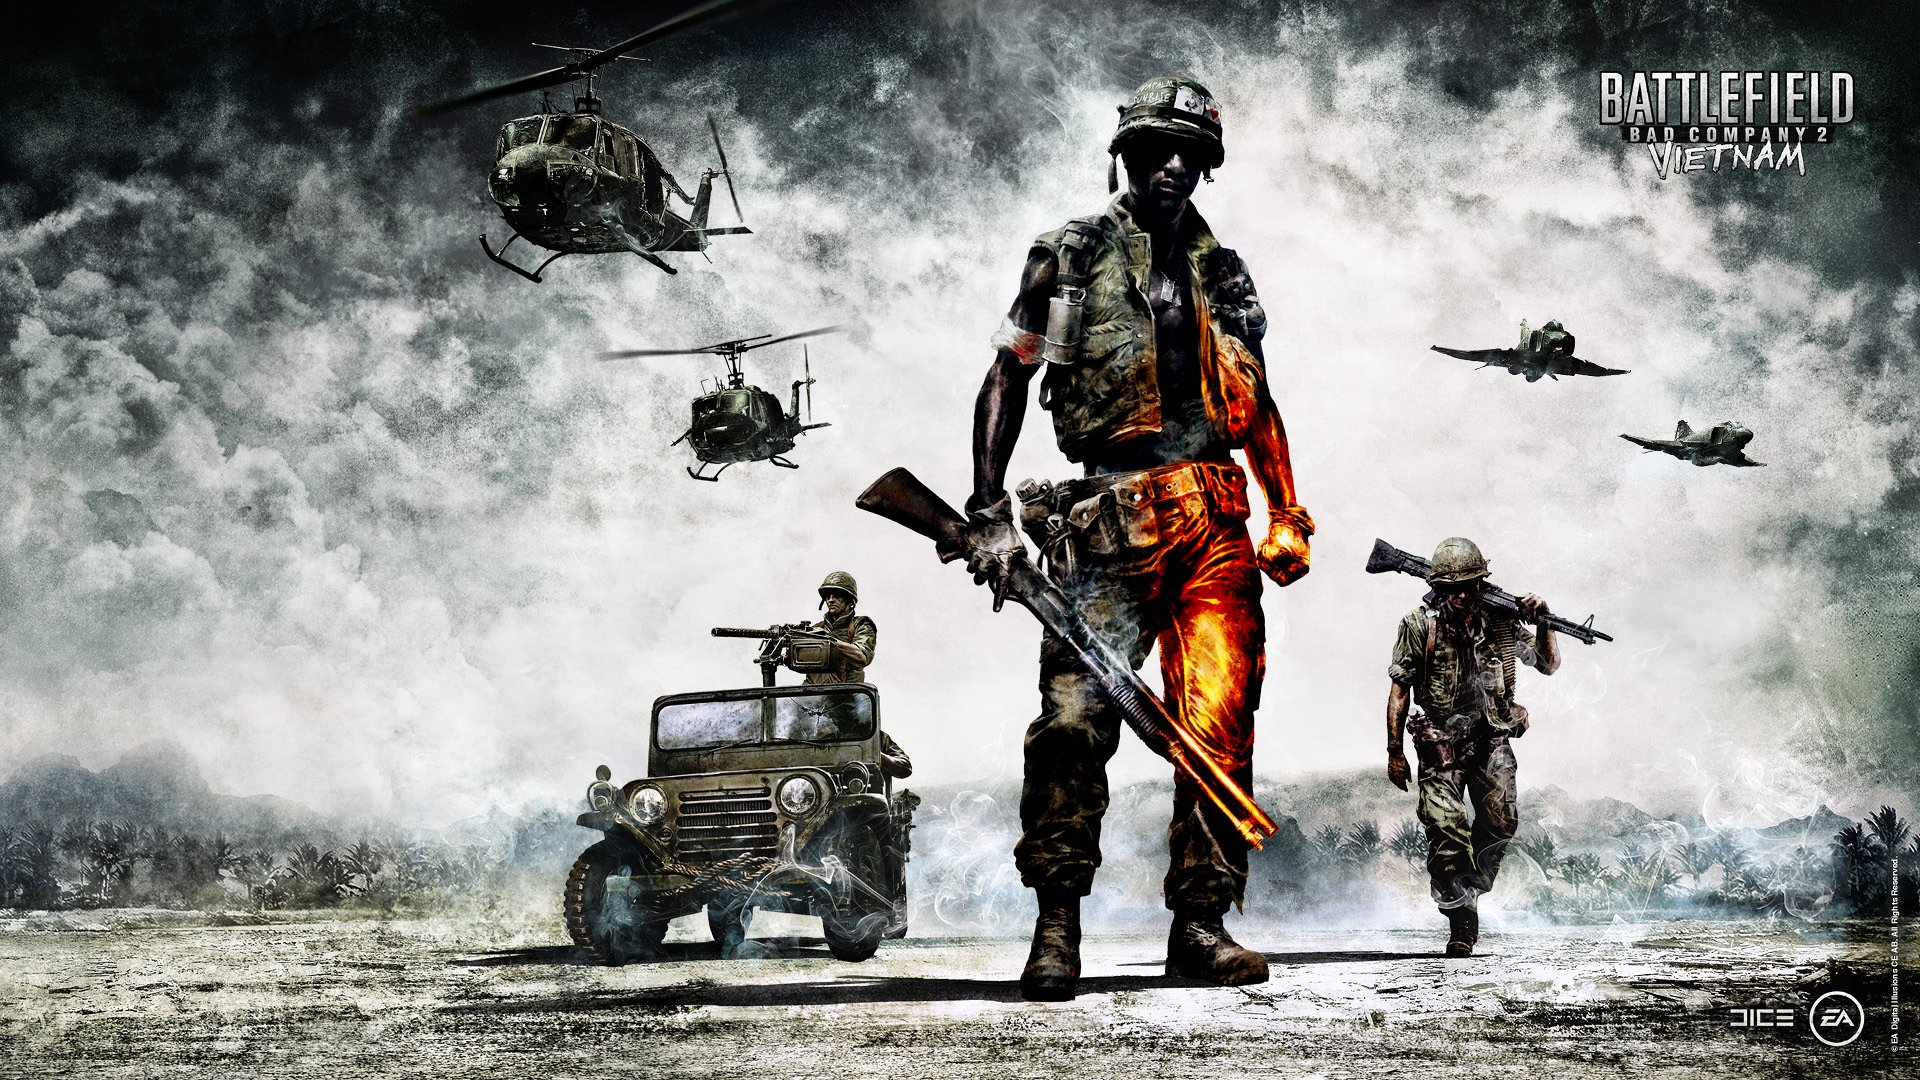 Battlefield Bad Company 2 Vietnam 1158.09 Kb